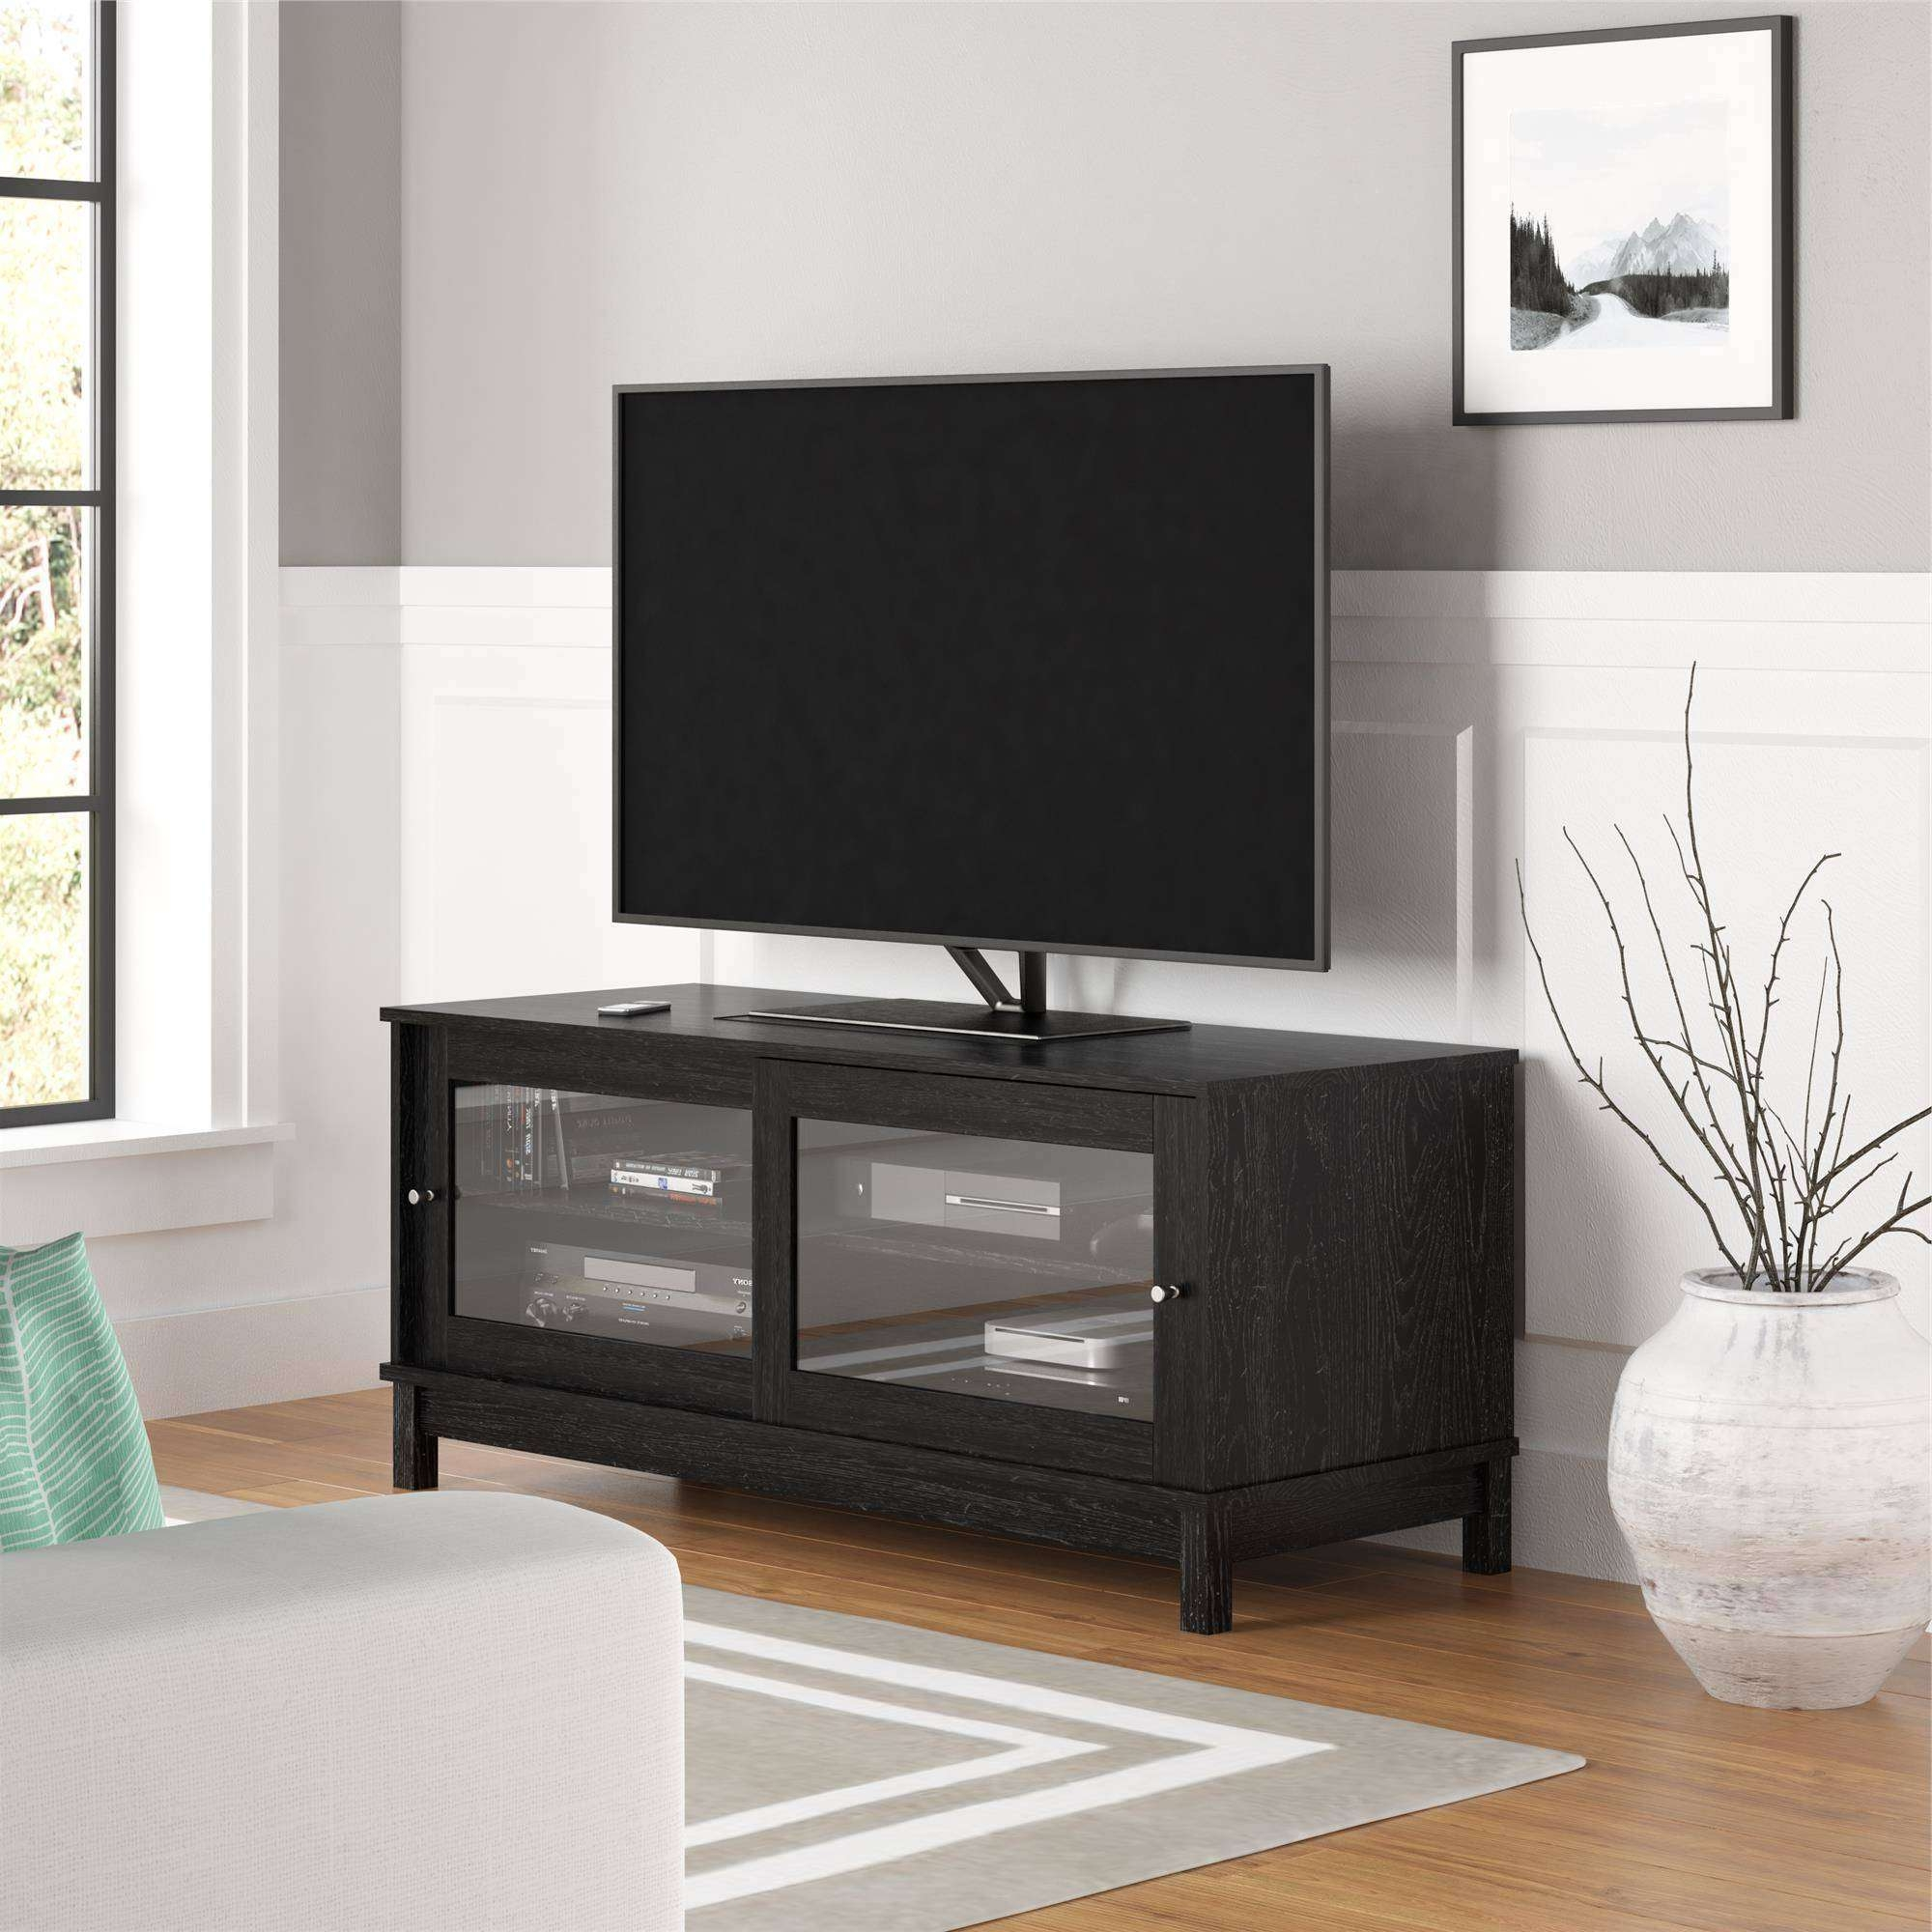 Tv : Narrow Black Painted Oak Wood Tv Cabinet With Glass Doors Intended For Glass Tv Cabinets With Doors (View 15 of 20)